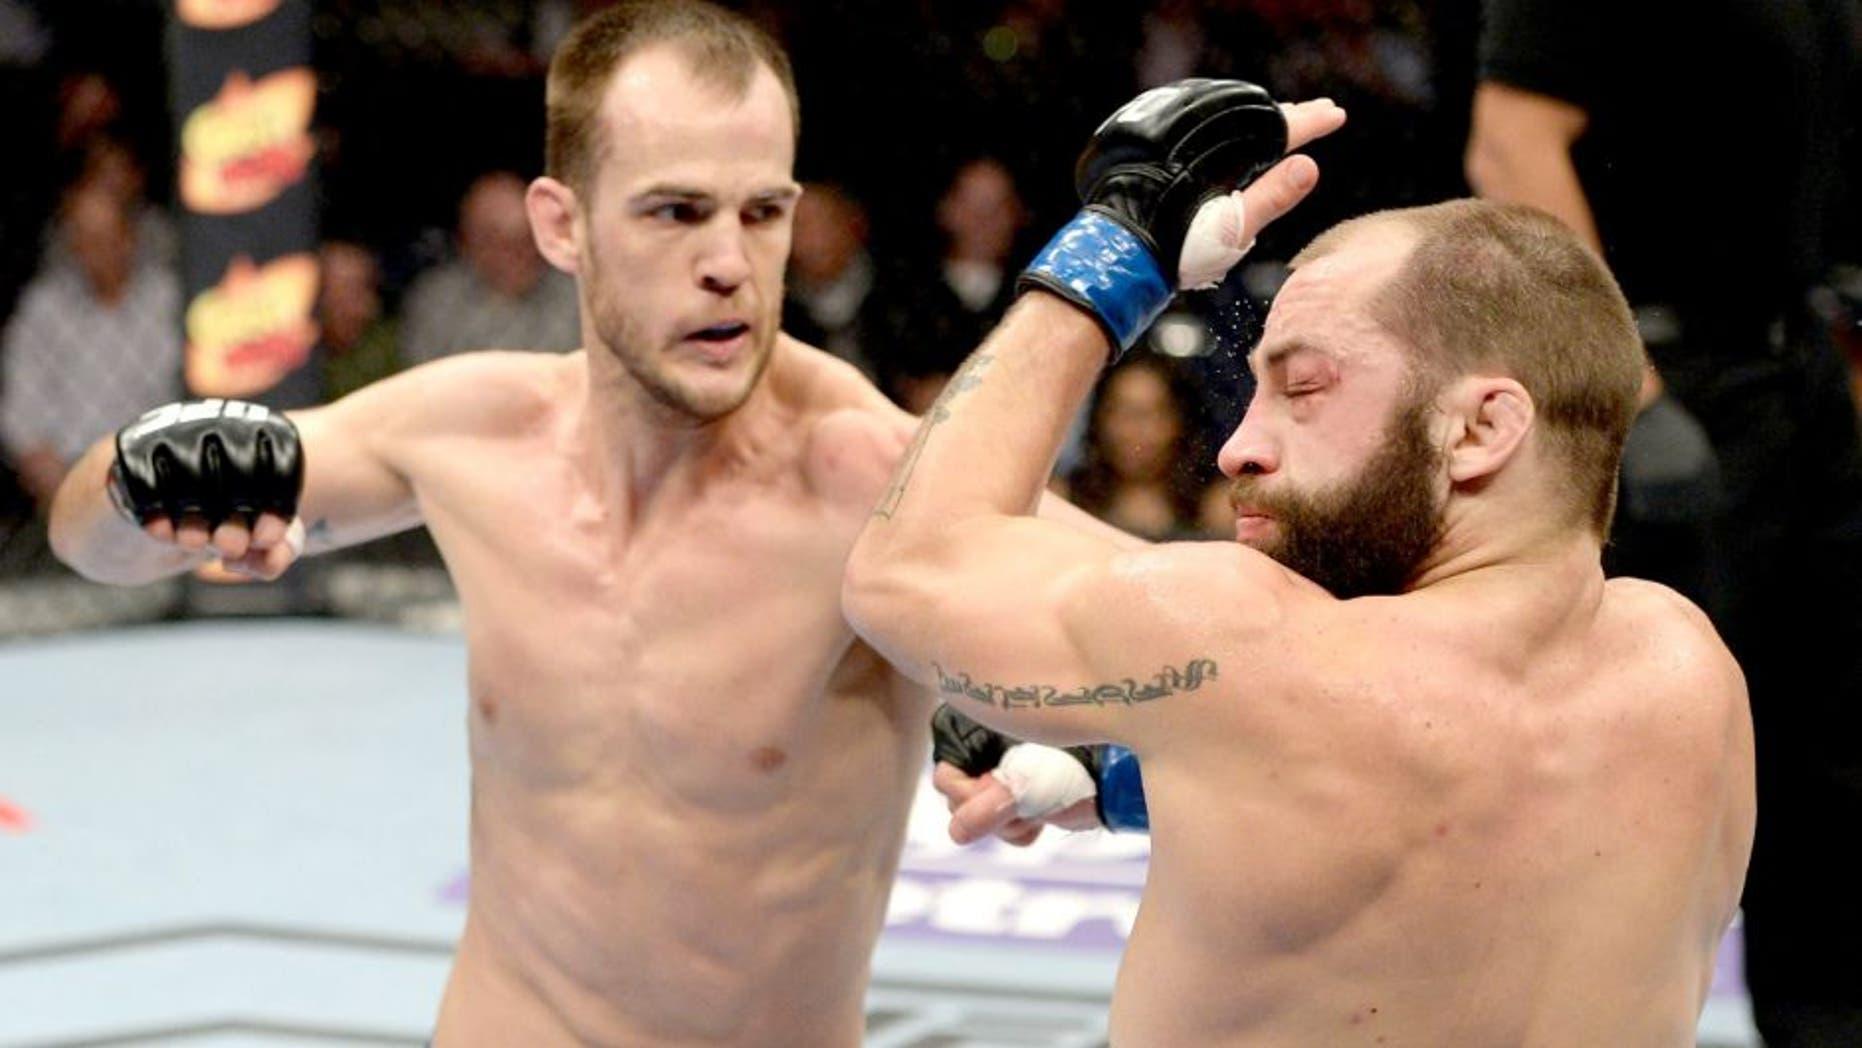 DULUTH, GA - JANUARY 15: (L-R) Cole Miller punches Sam Sicilia in their featherweight fight during the UFC Fight Night event inside The Arena at Gwinnett Center on January 15, 2014 in Duluth, Georgia. (Photo by Jeff Bottari/Zuffa LLC/Zuffa LLC via Getty Images) *** Local Caption *** Sam Sicilia; Cole Miller